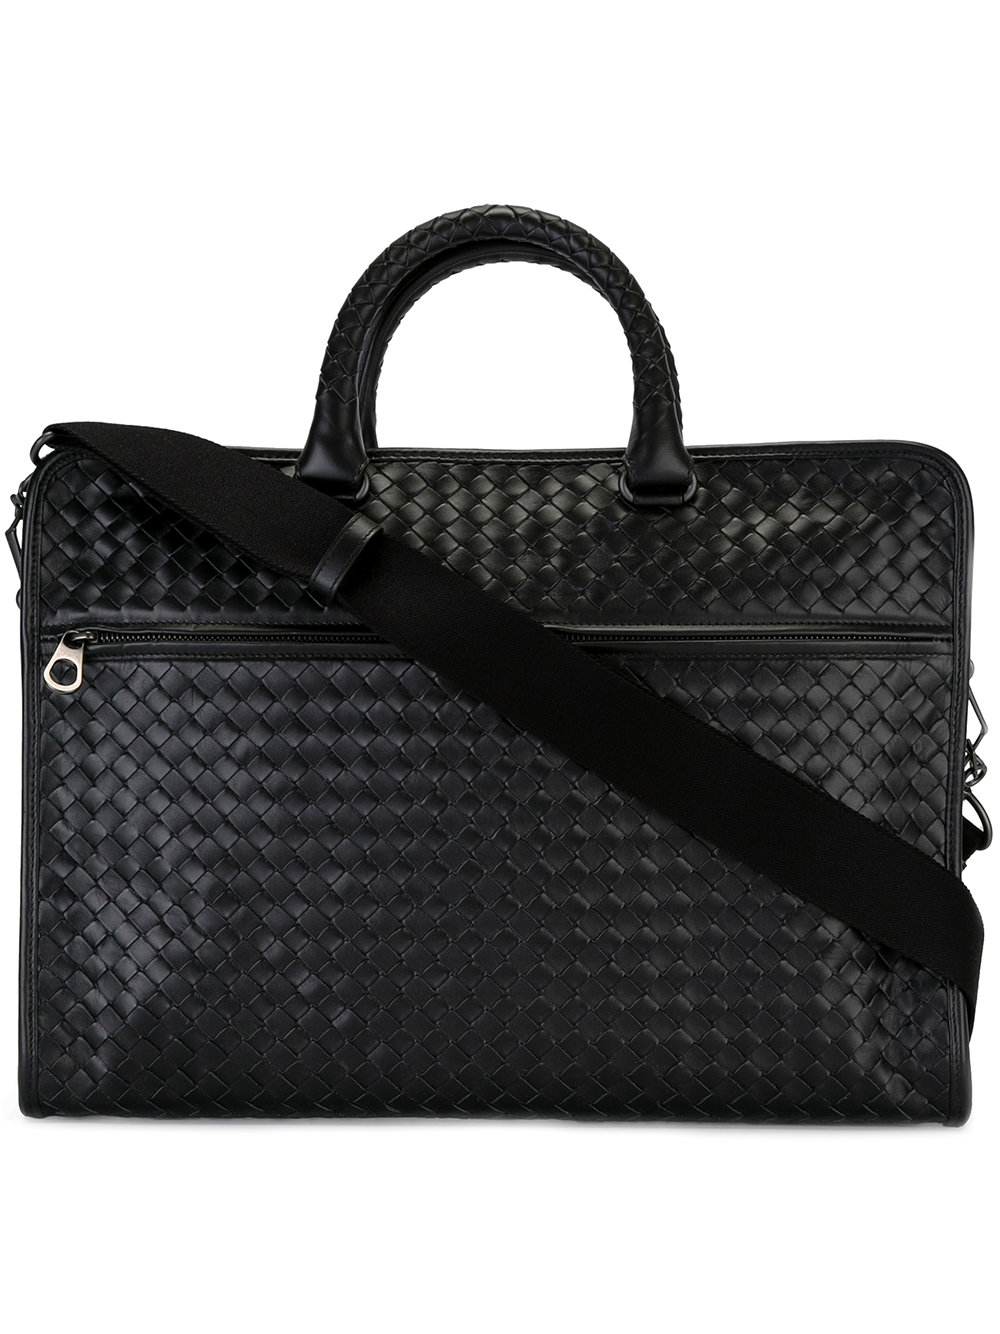 BOTTEGA VENETA mens bag